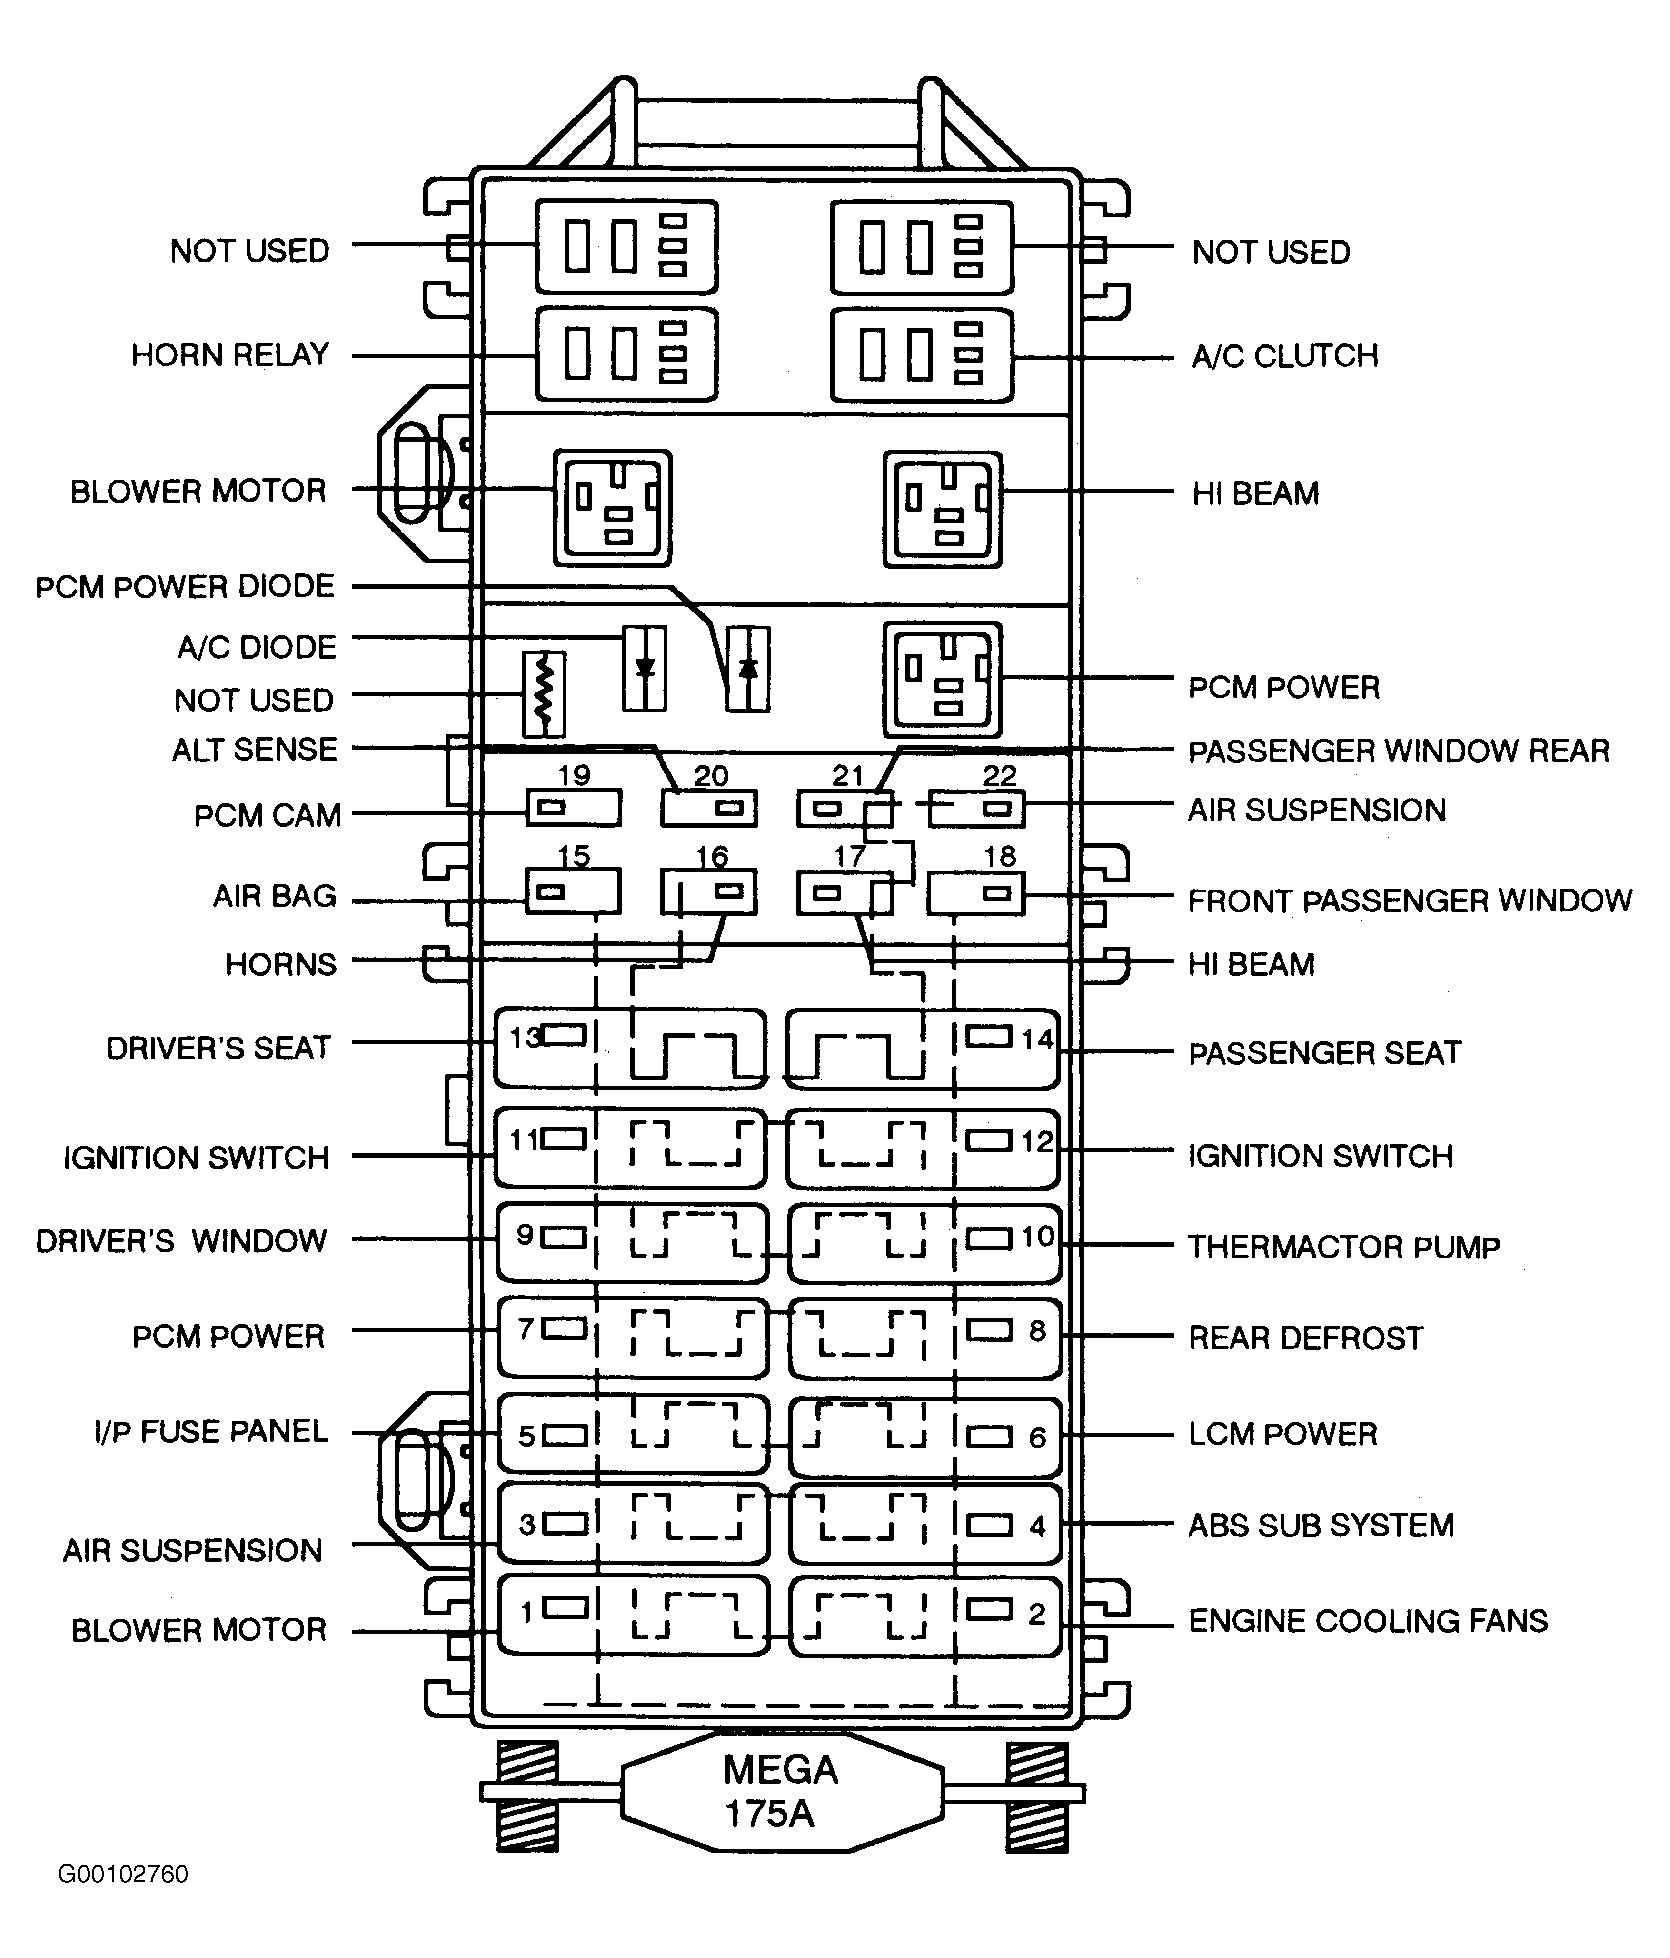 hight resolution of fuse box diagram for 1998 lincoln continental wiring diagram inside 2000 lincoln town car fuse box diagram 2000 town car fuse diagram